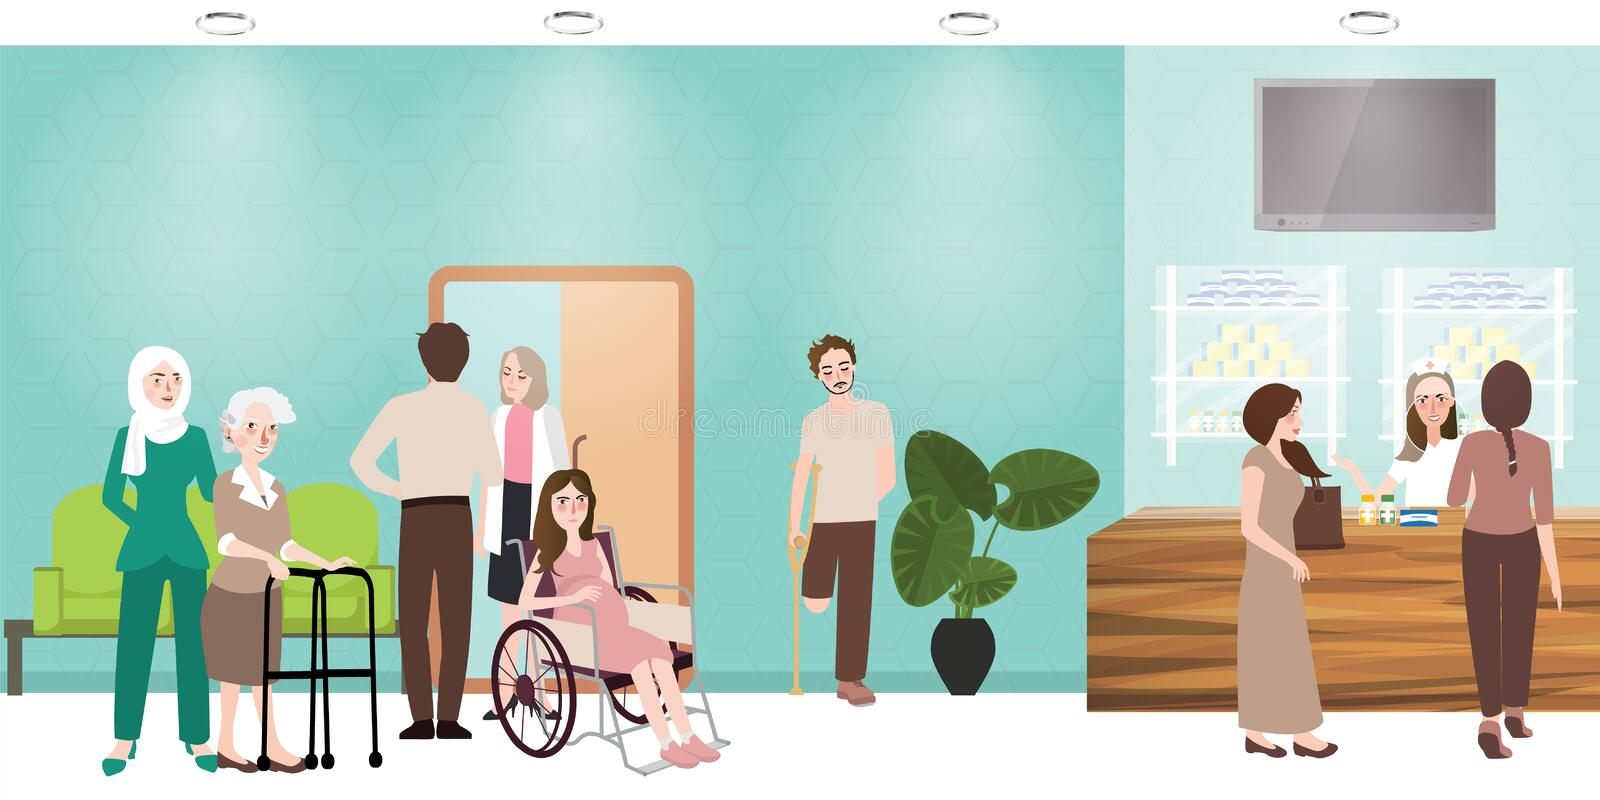 Hospital waiting room clinic lobby reception and pharmacy illustration. Of people nurse waiting working situation activities vector stock illustration